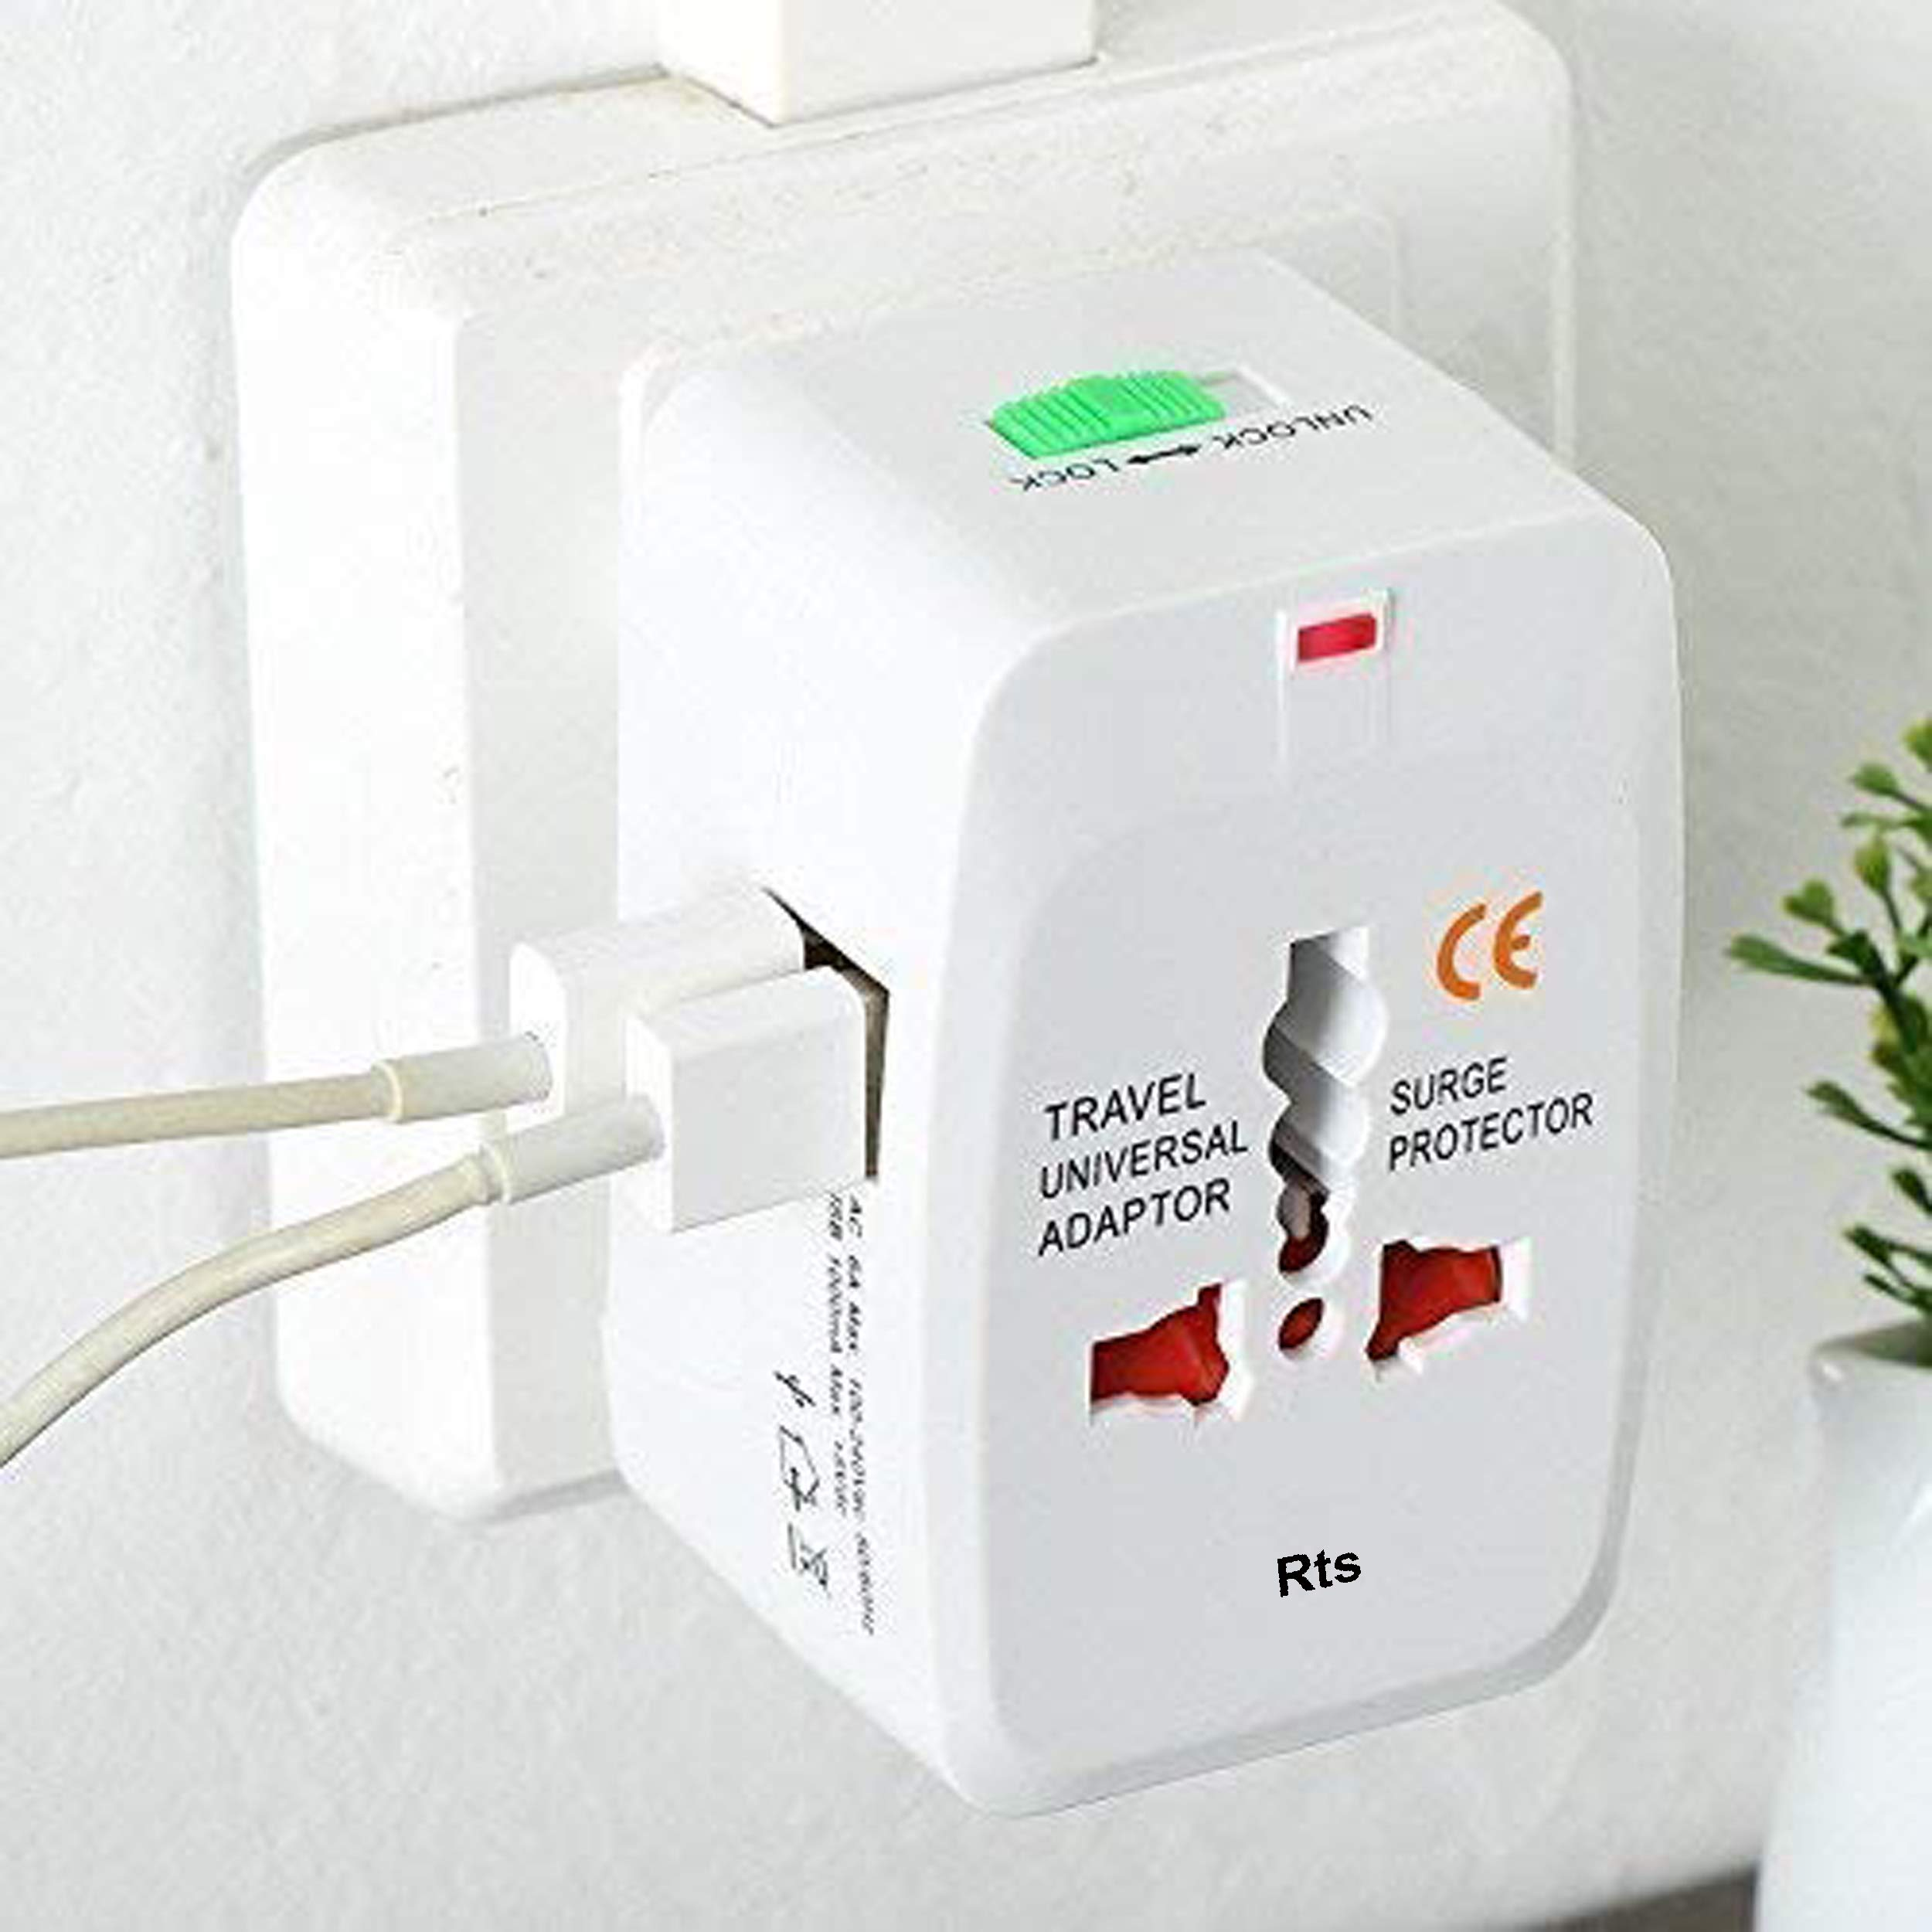 rts Worldwide Travel Adapter with Build in Dual USB Port Charger (B071HSBNQ8) Amazon Price History, Amazon Price Tracker